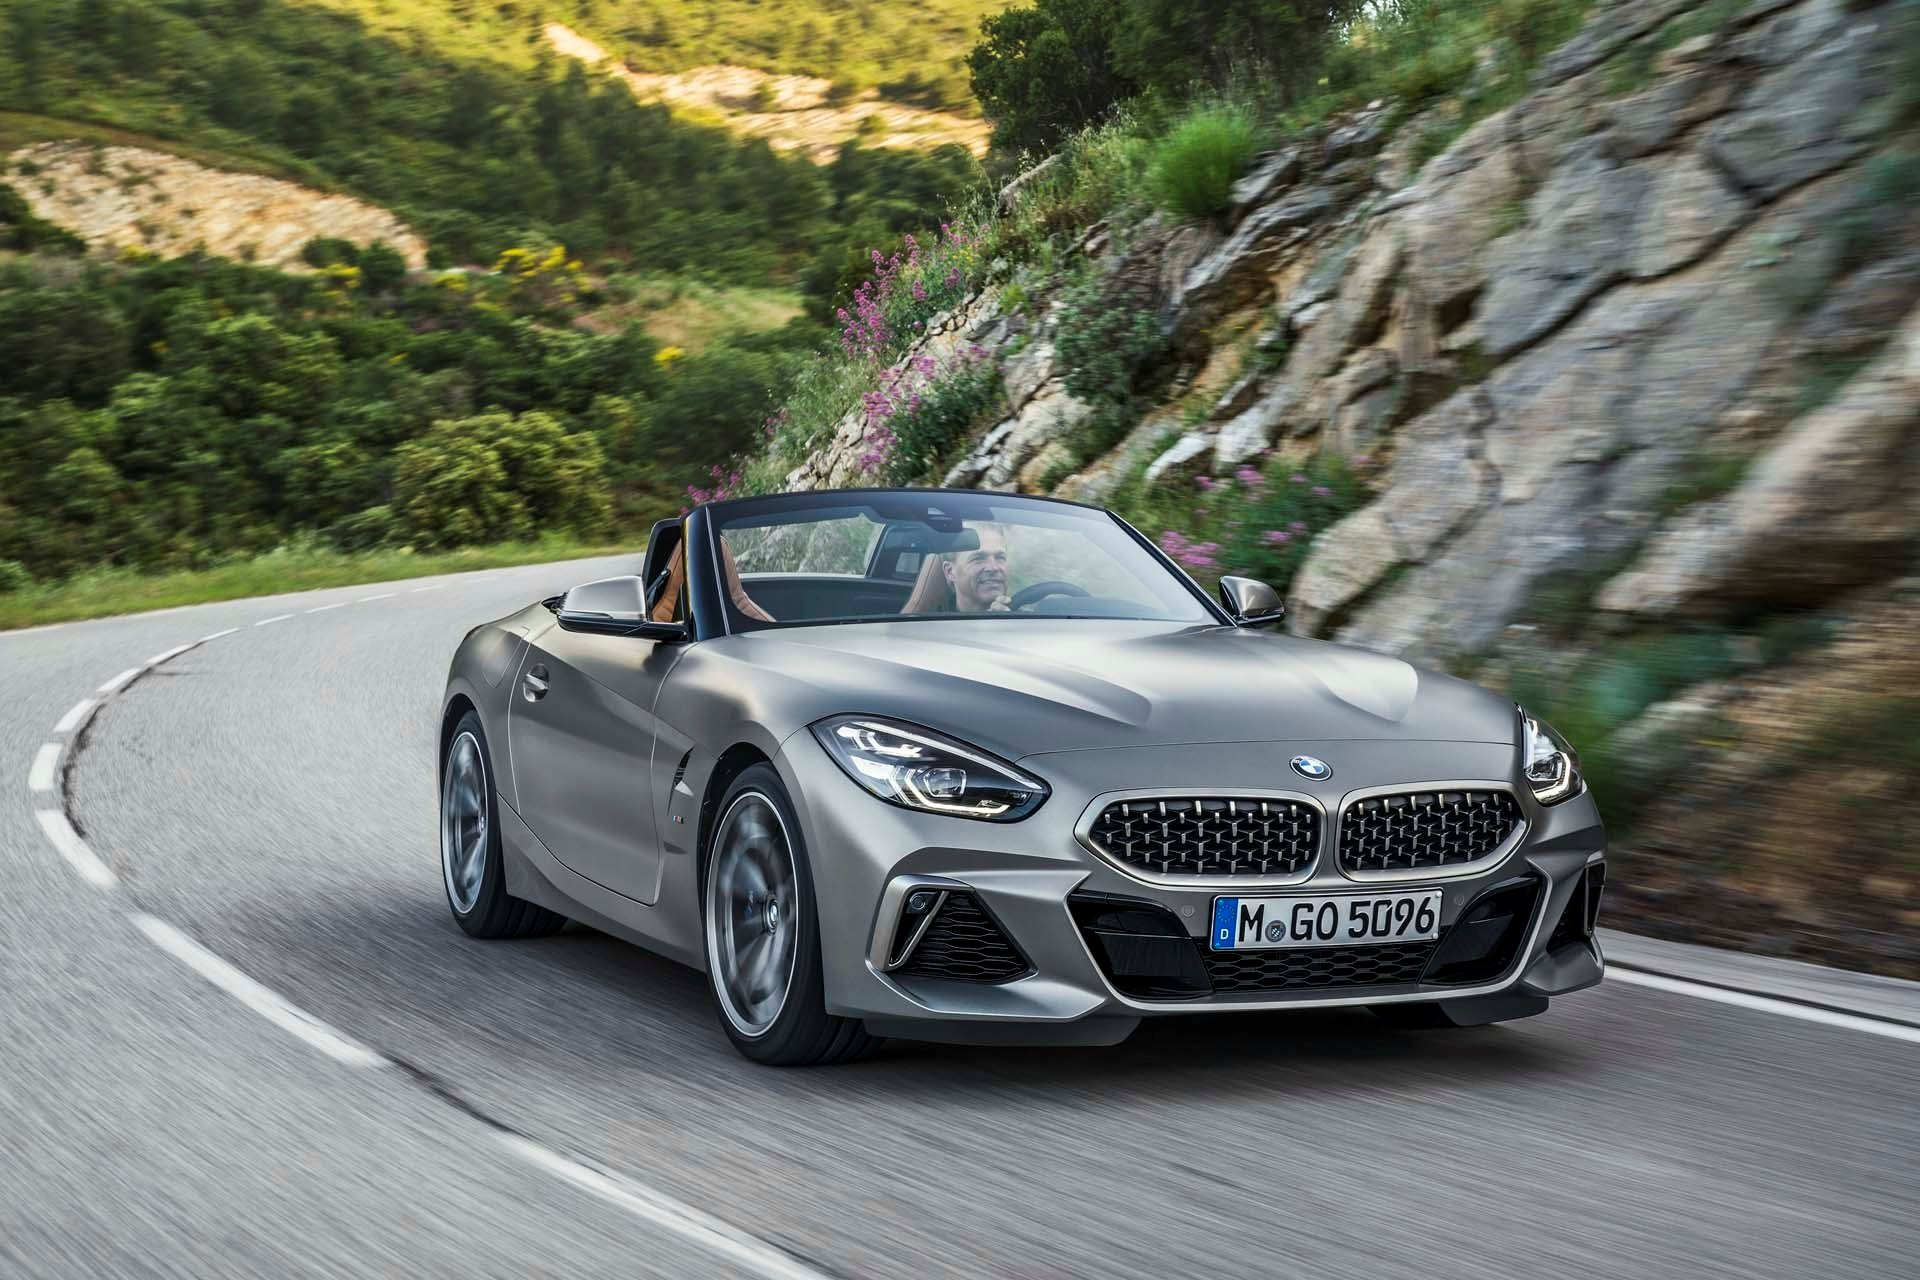 New 2020 BMW Z4 sDrive M40i Convertible sDrive M40i for sale $63,700 at M and V Leasing in Brooklyn NY 11223 1